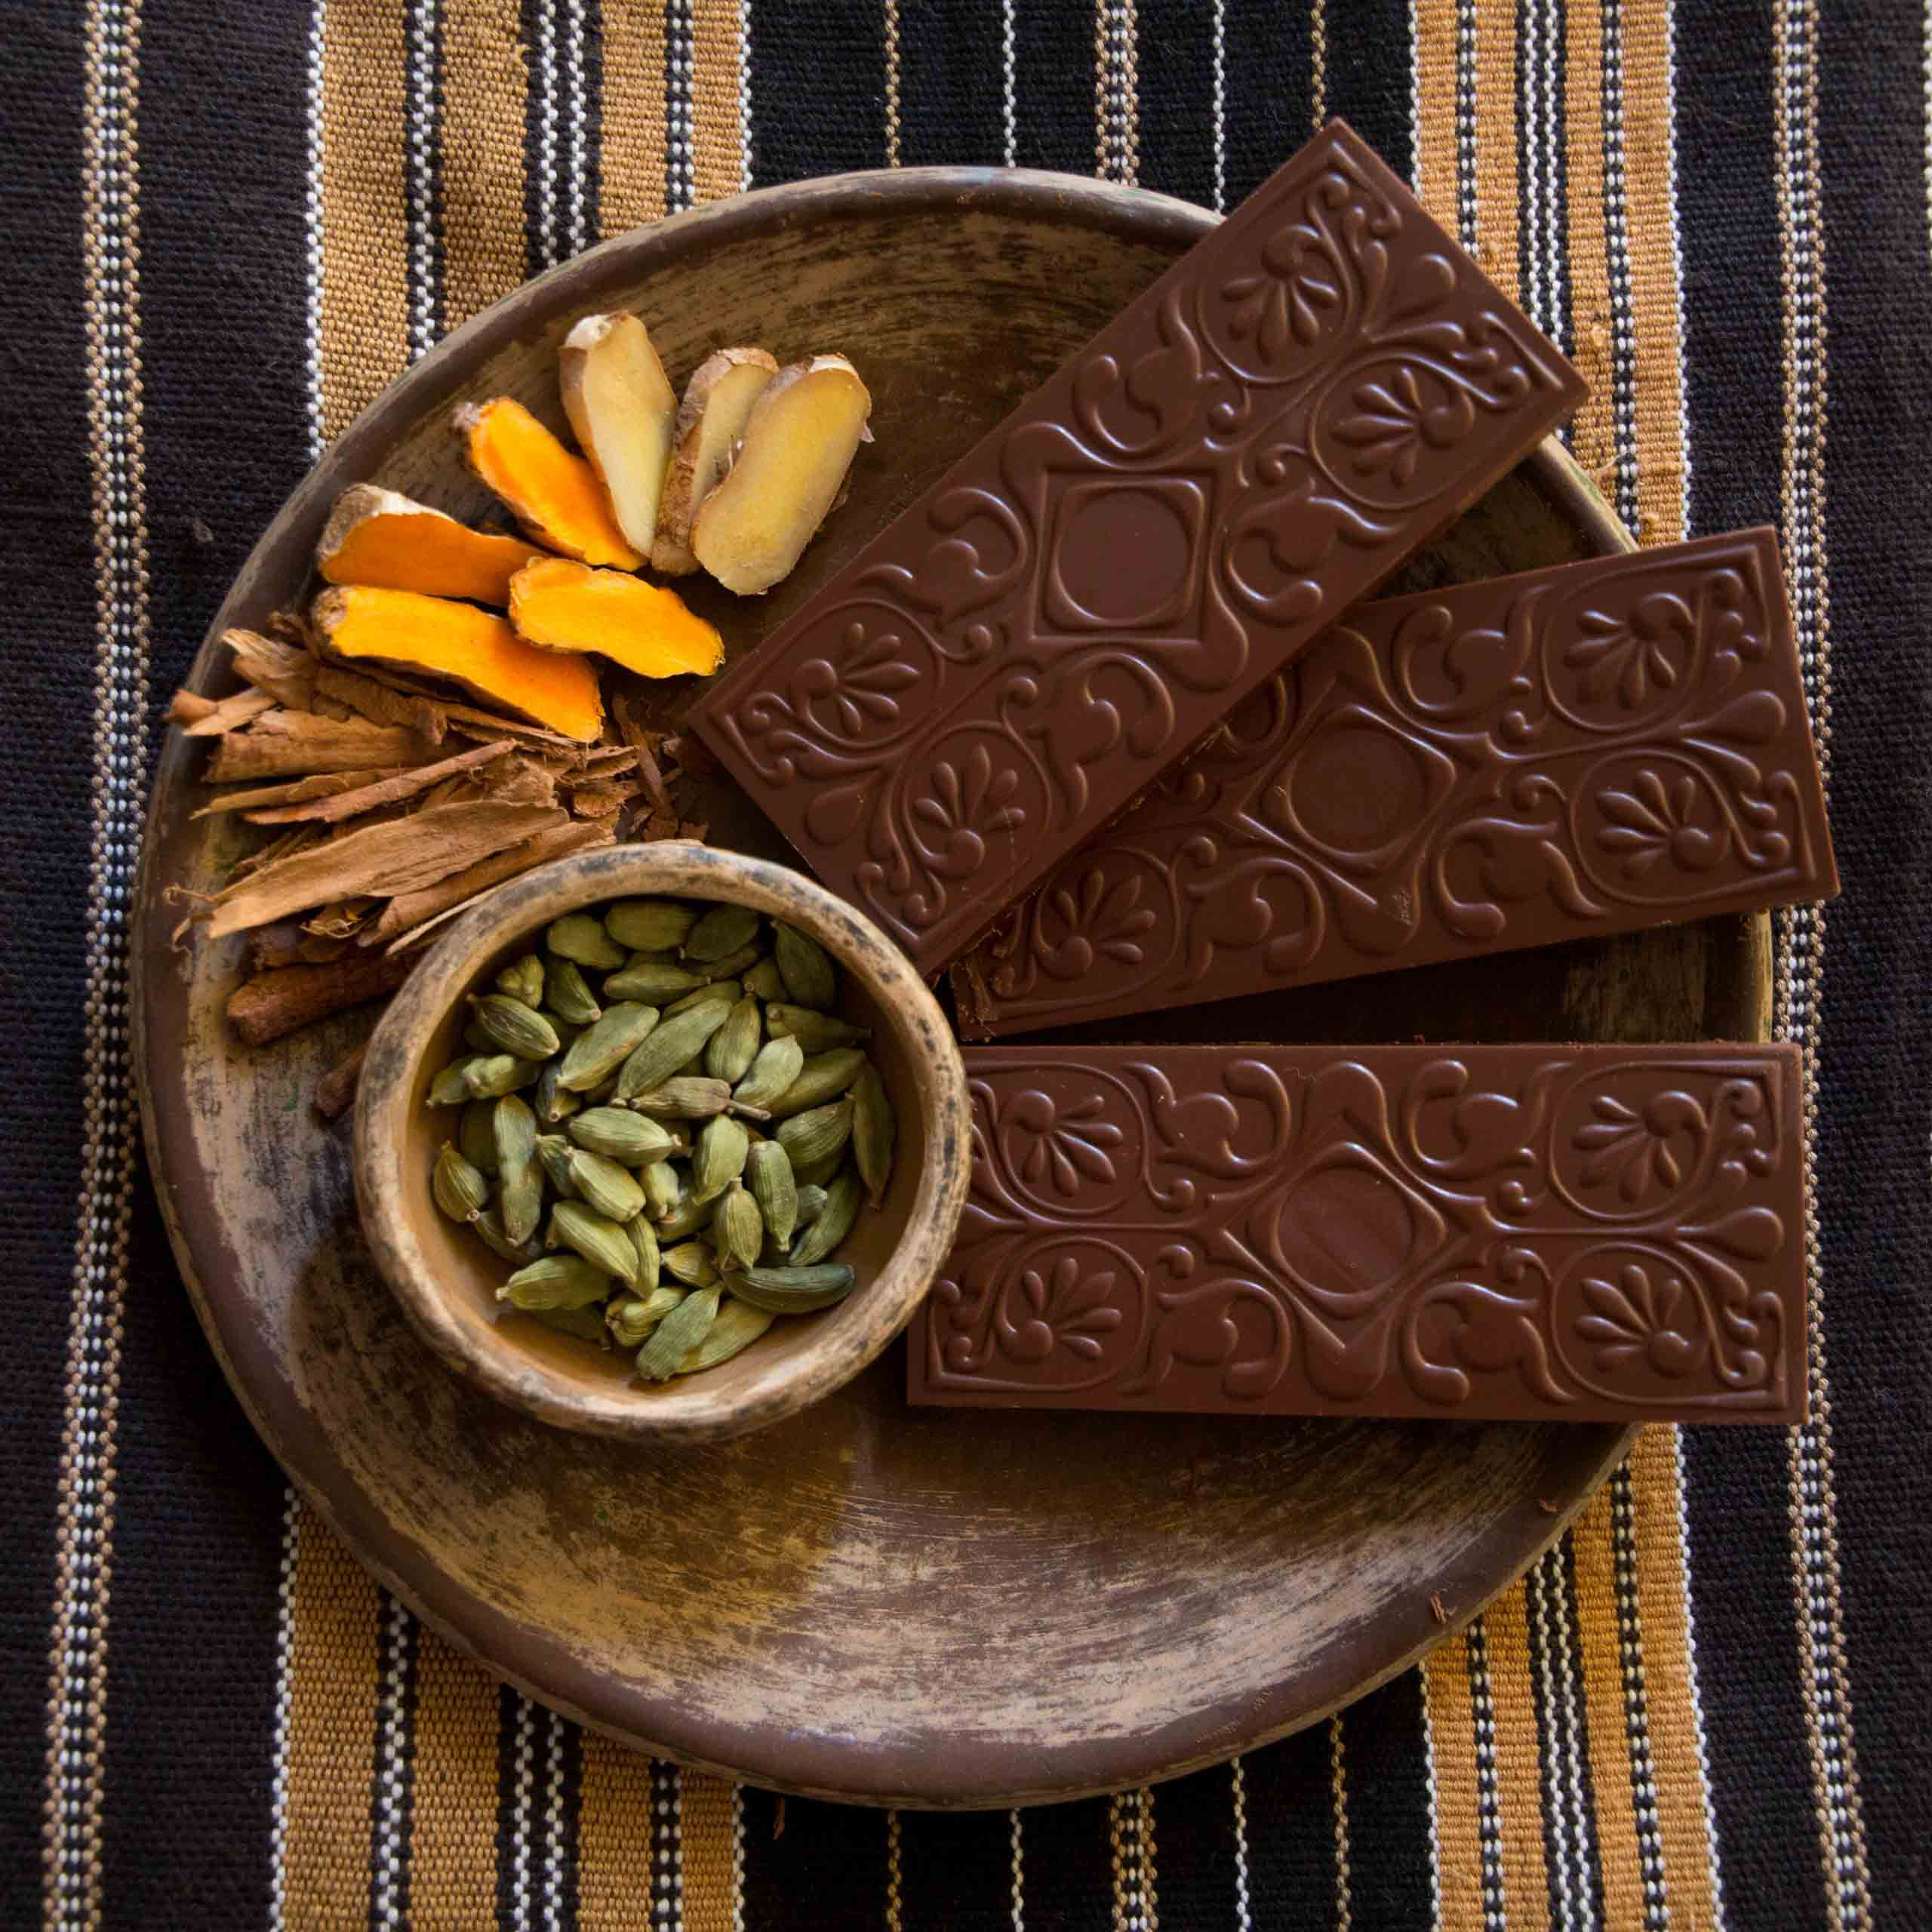 Casa Oro Group Oro-Chocolate-Golden-Chai-Milk-Chocolate-Bar-Wild-Heirloom-Cacao-Reforestation-Organic-Local-Natural-Ingredients-1 Casa Oro Group